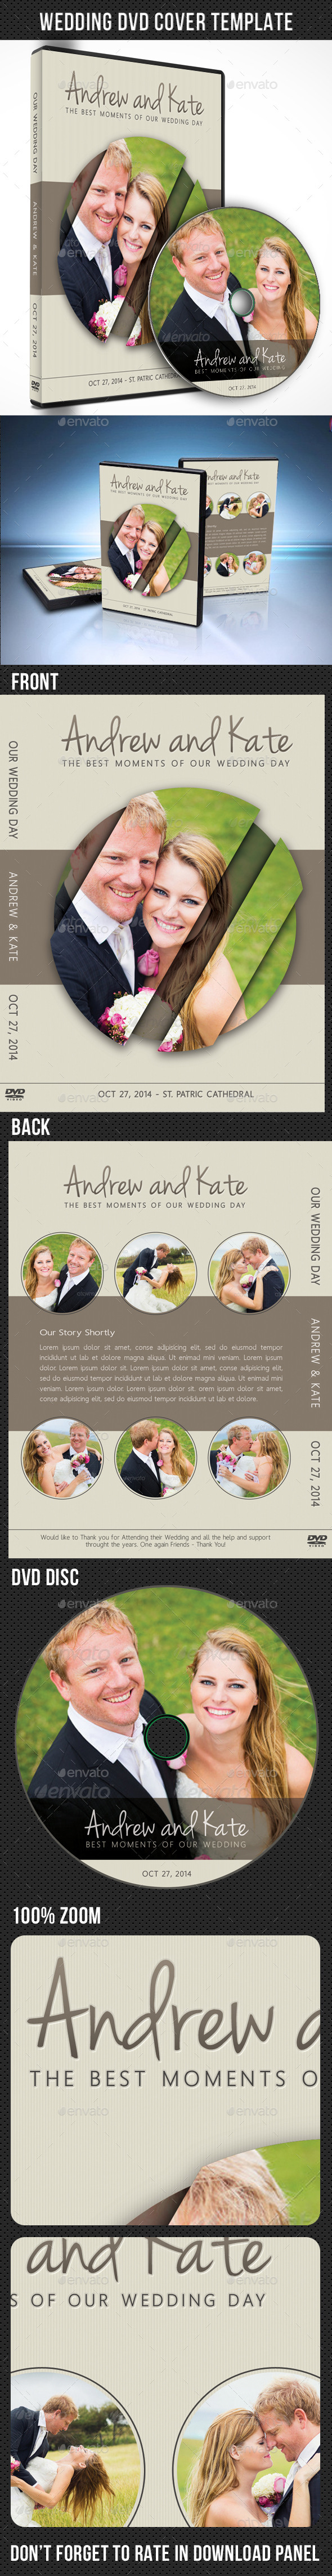 GraphicRiver Wedding DVD Cover Template 07 9092010